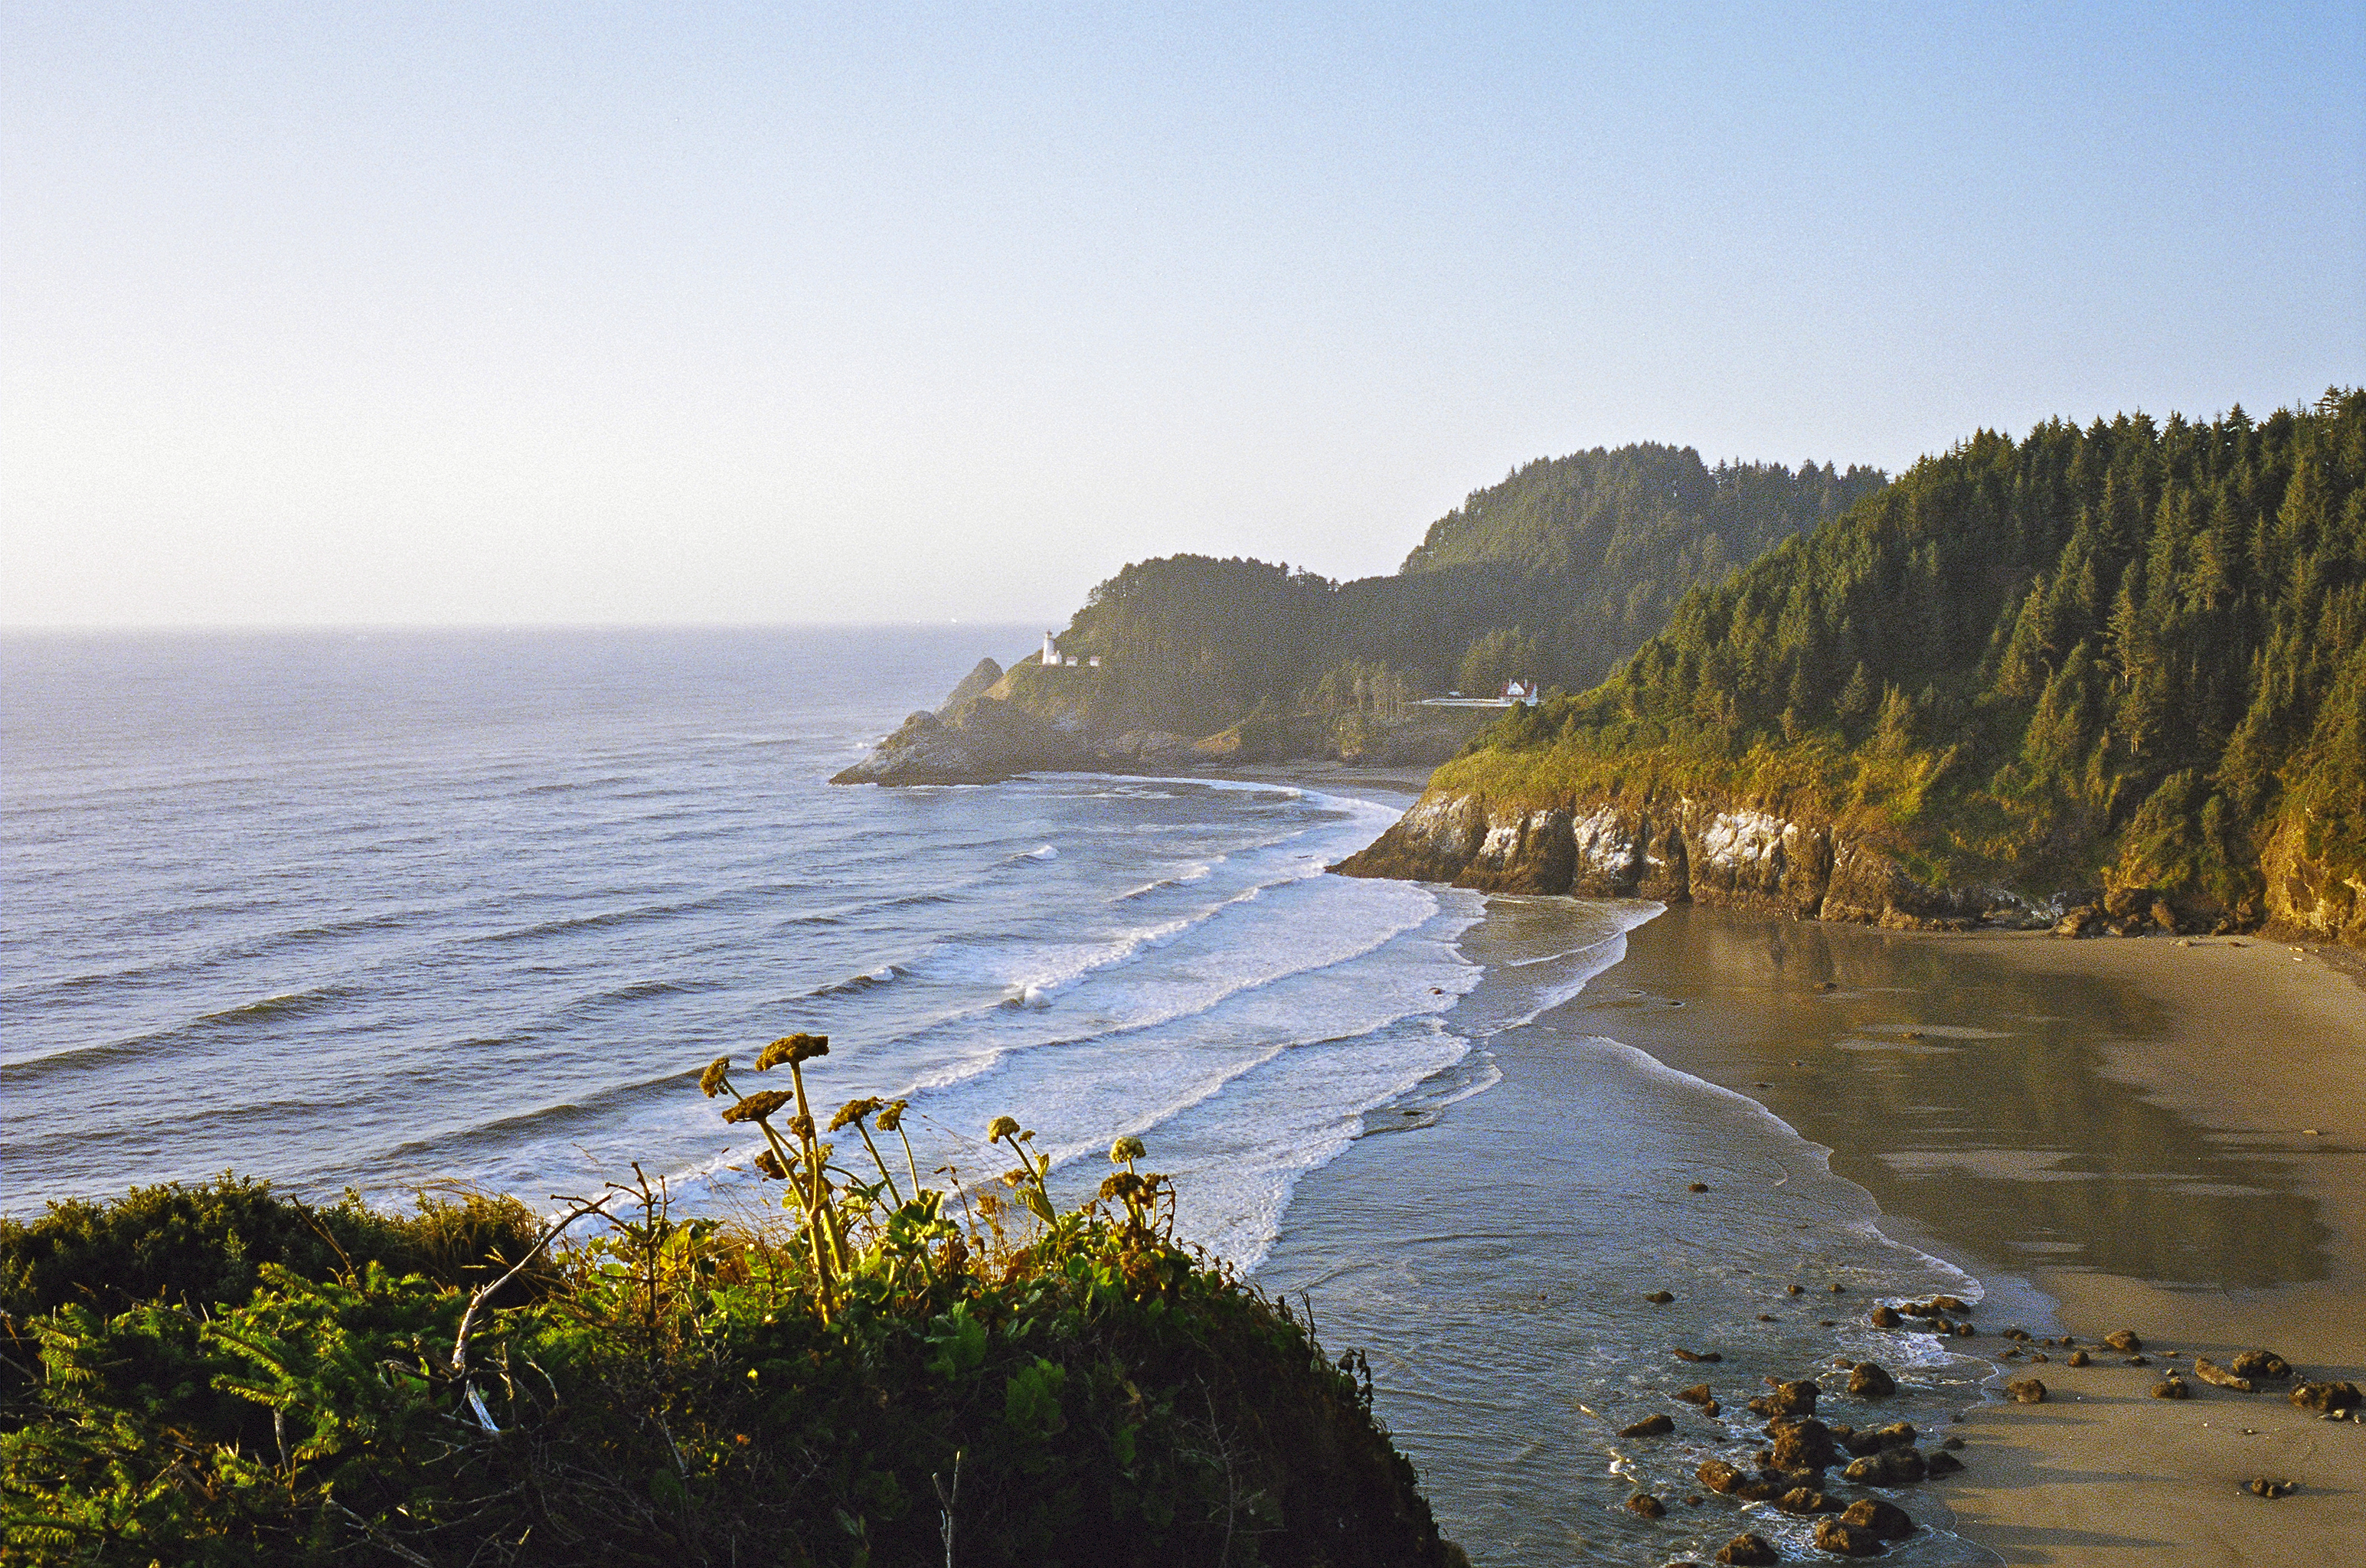 Oregon Coast , view tree covered shore and ocean waves.